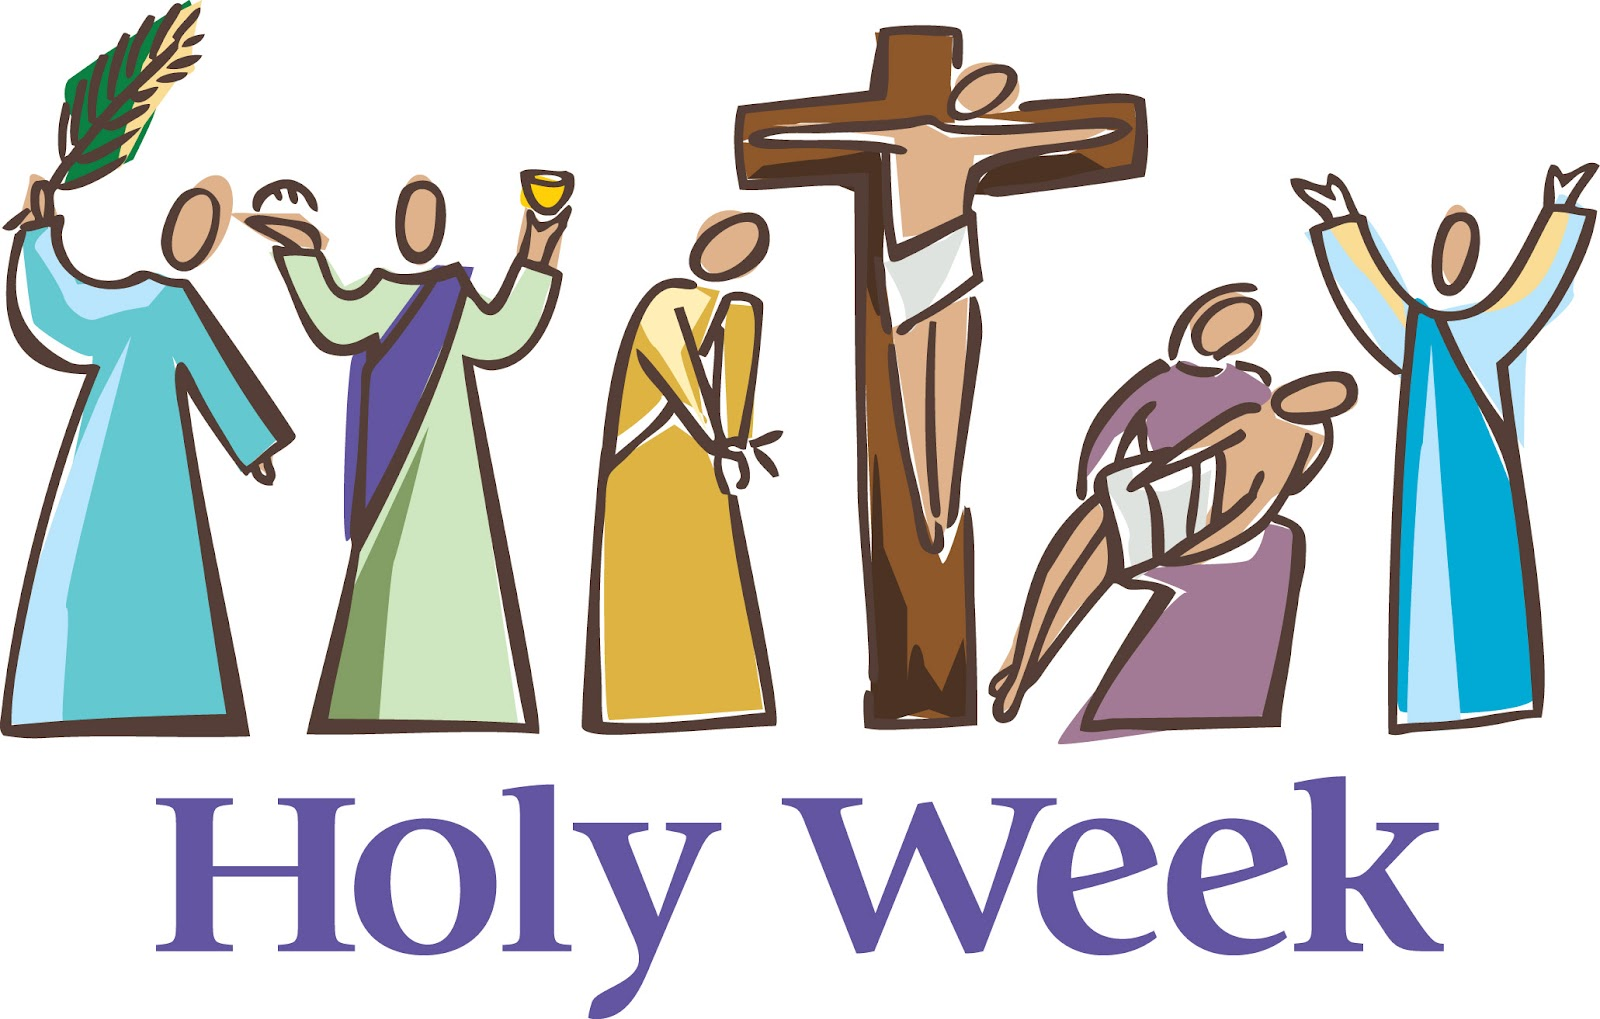 First Of All We Have To Distinguish Holy Week From Easter Time.